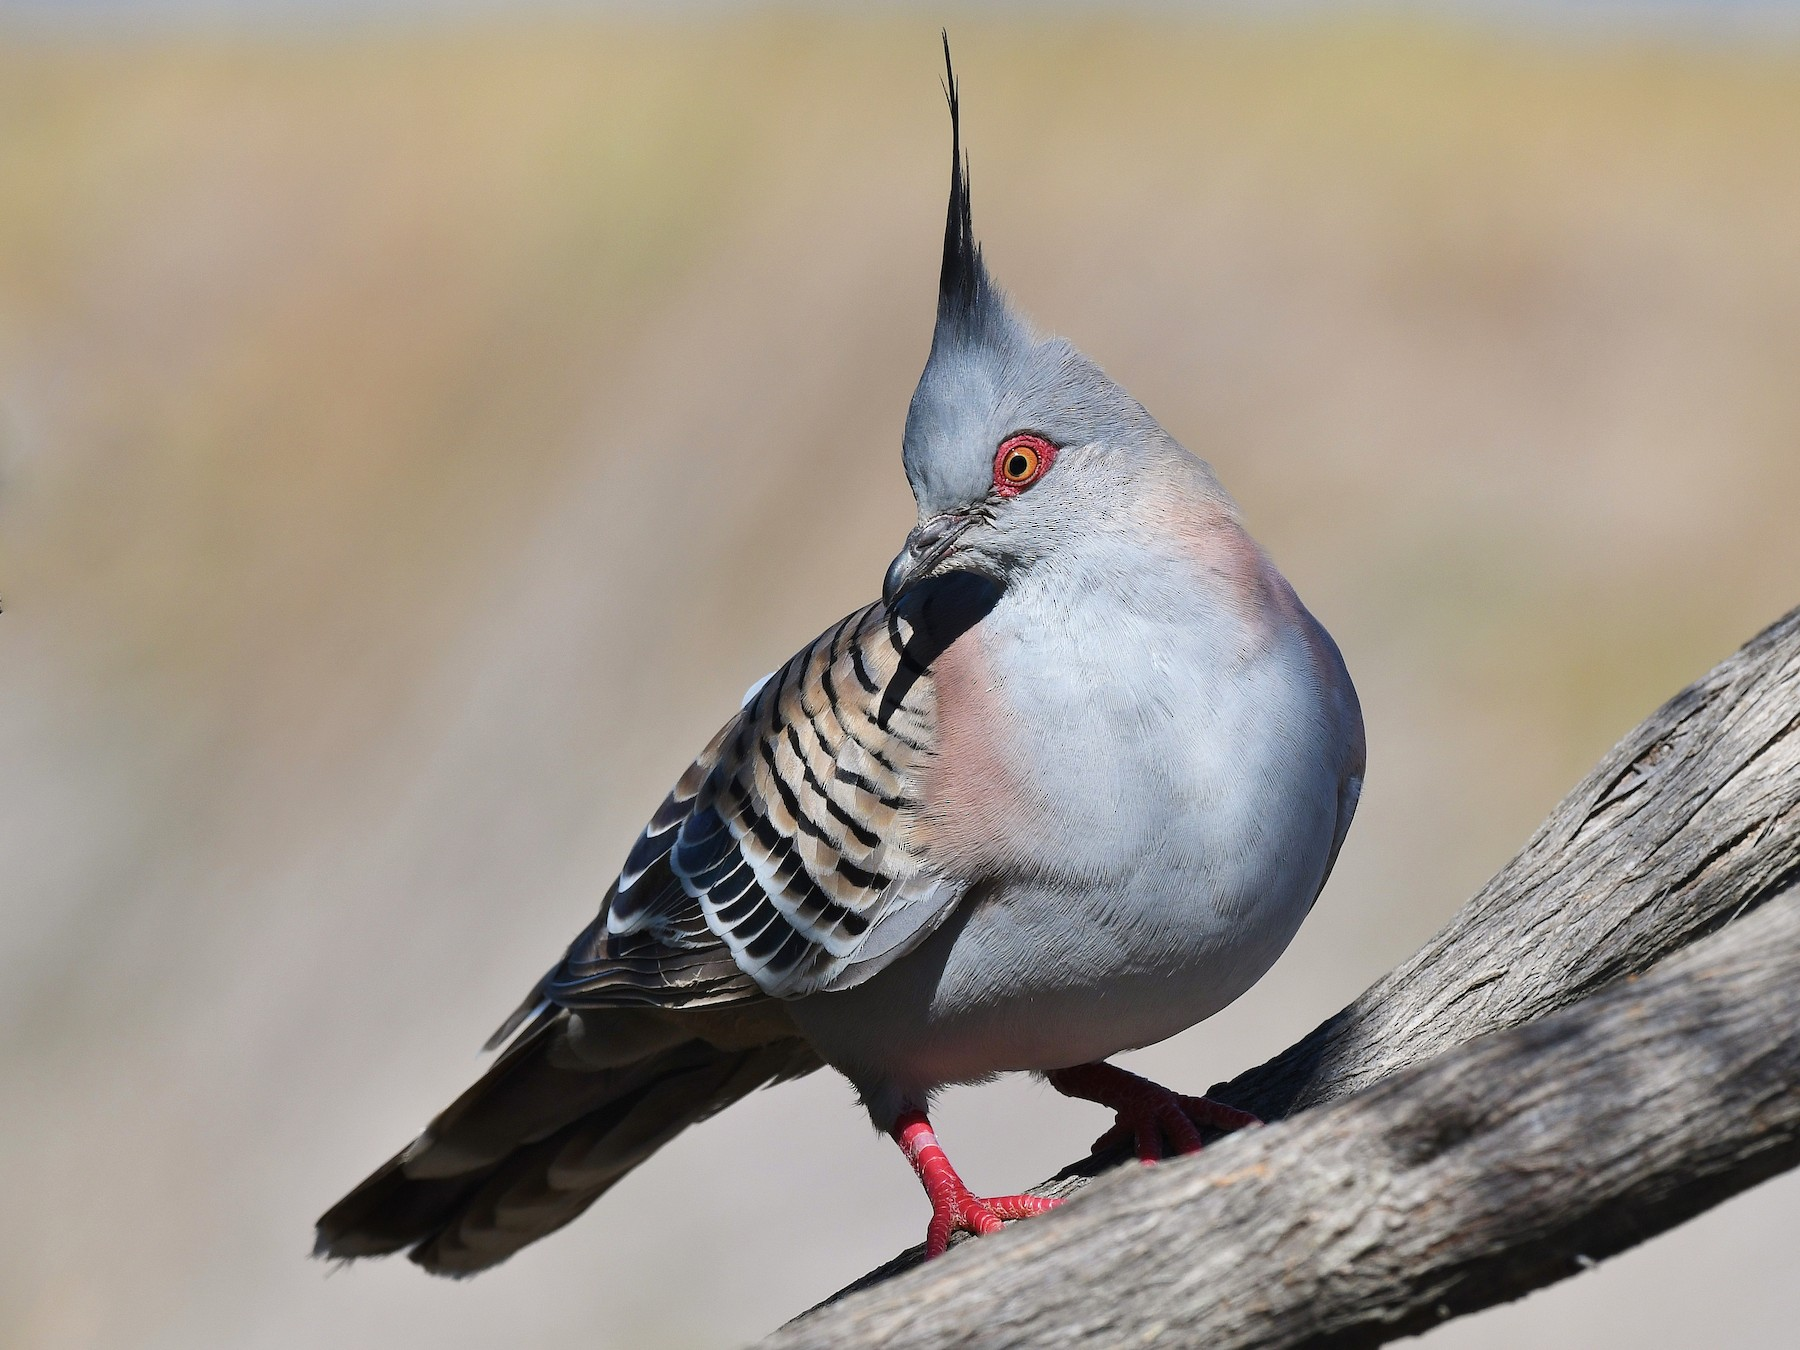 Crested Pigeon - Terence Alexander